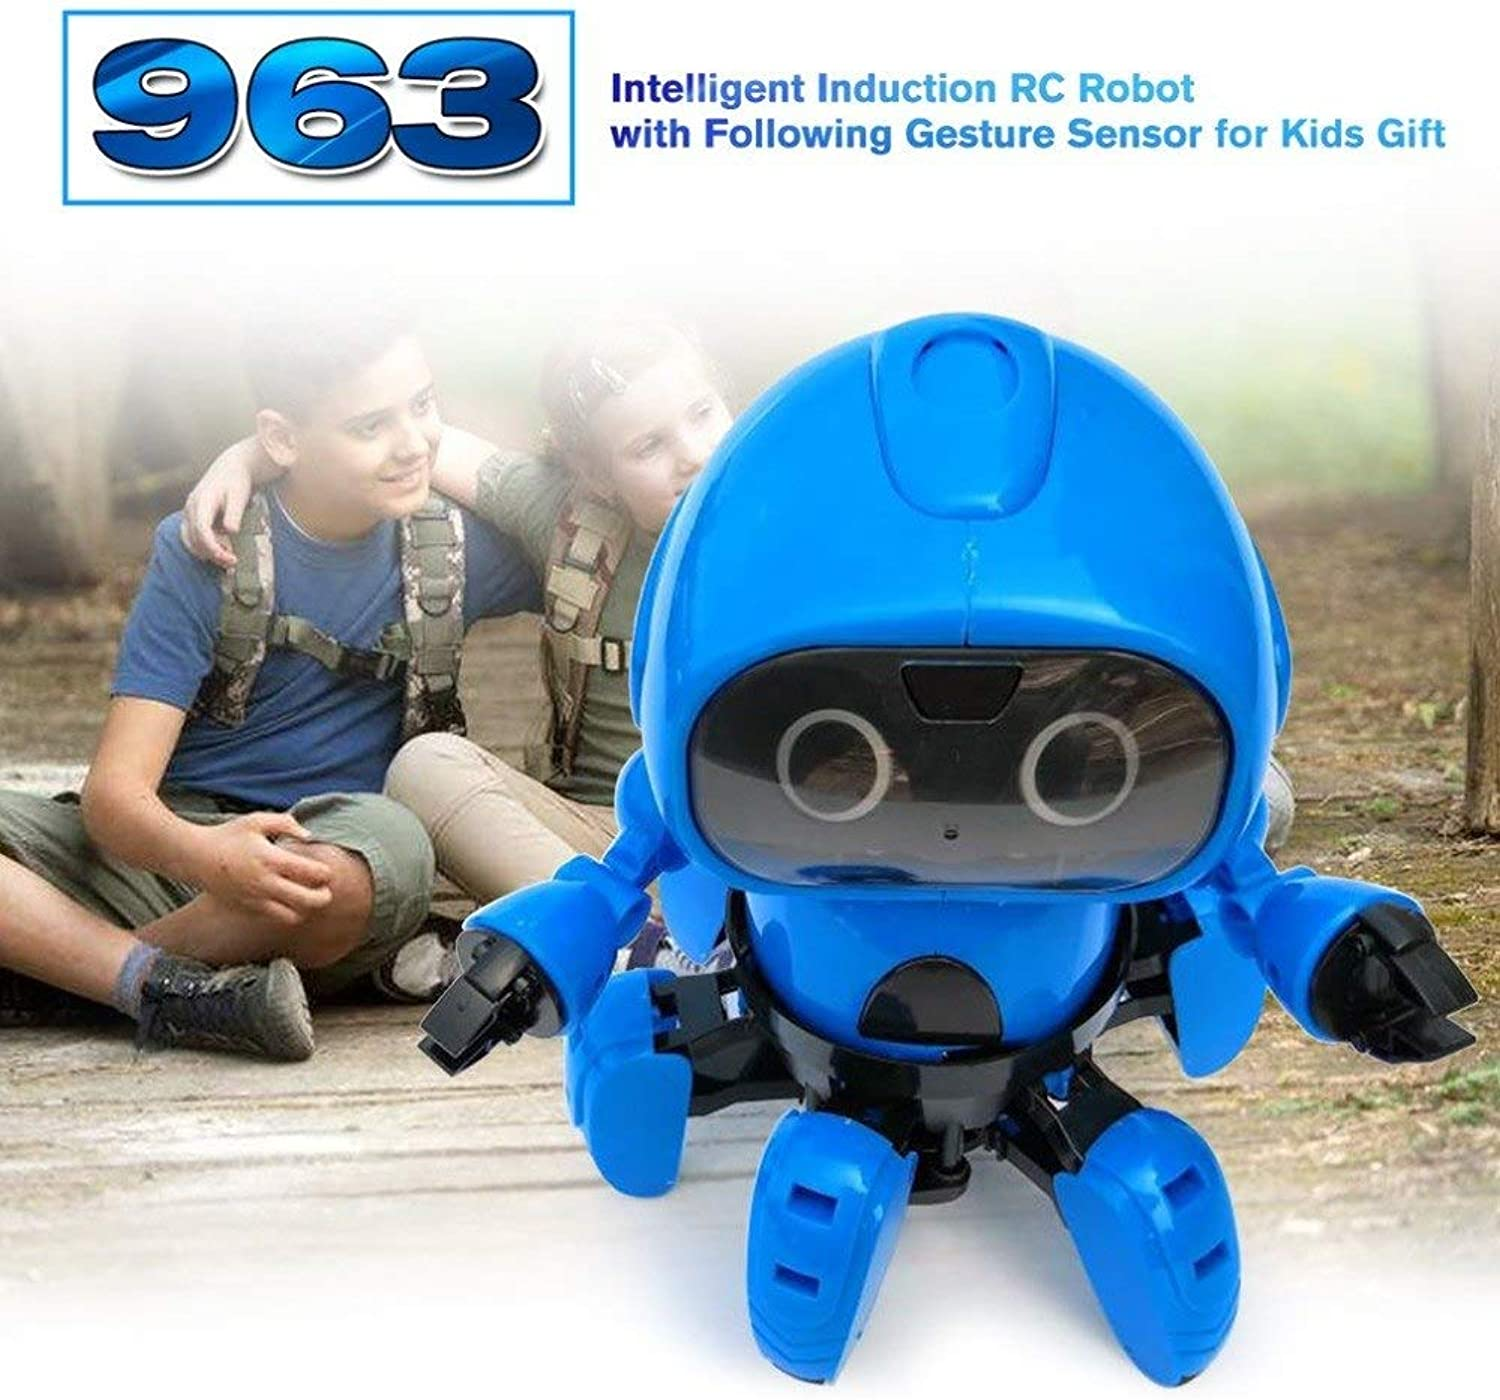 Generic Kids 963 Intelligent Induction RC Robot Toys Model with Following Gesture Sensor Obstacle Avoidance Baby Learning Toy Gift